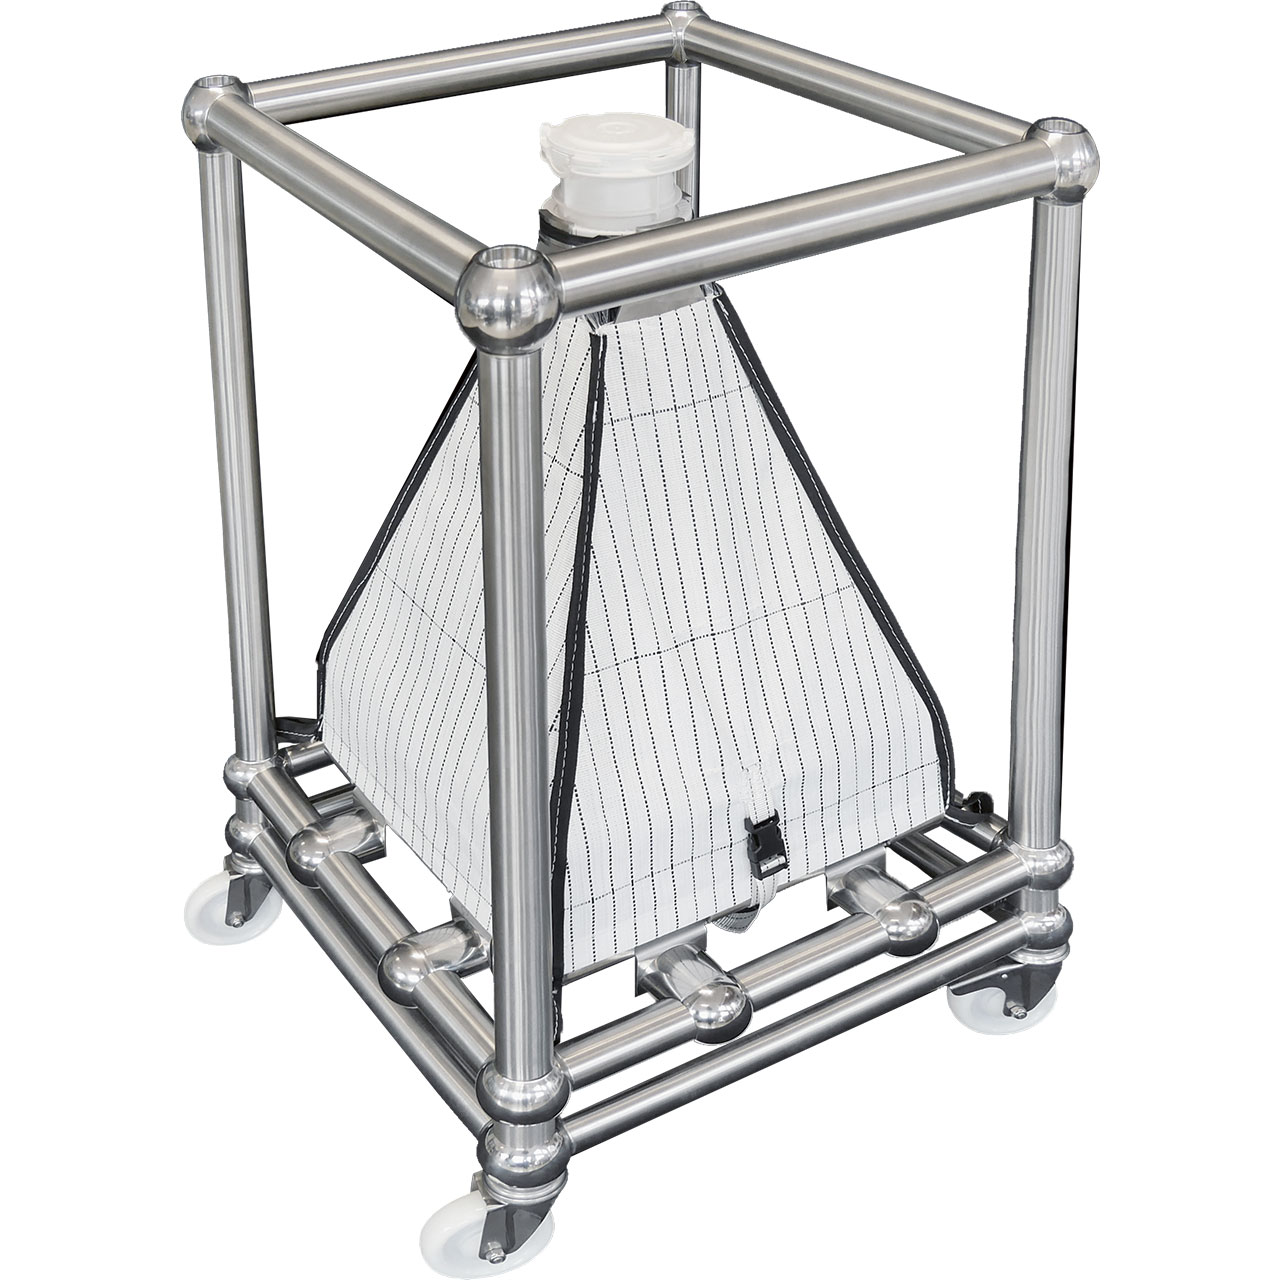 FIBC Bin Blending Frame for Single Use Containment Systems